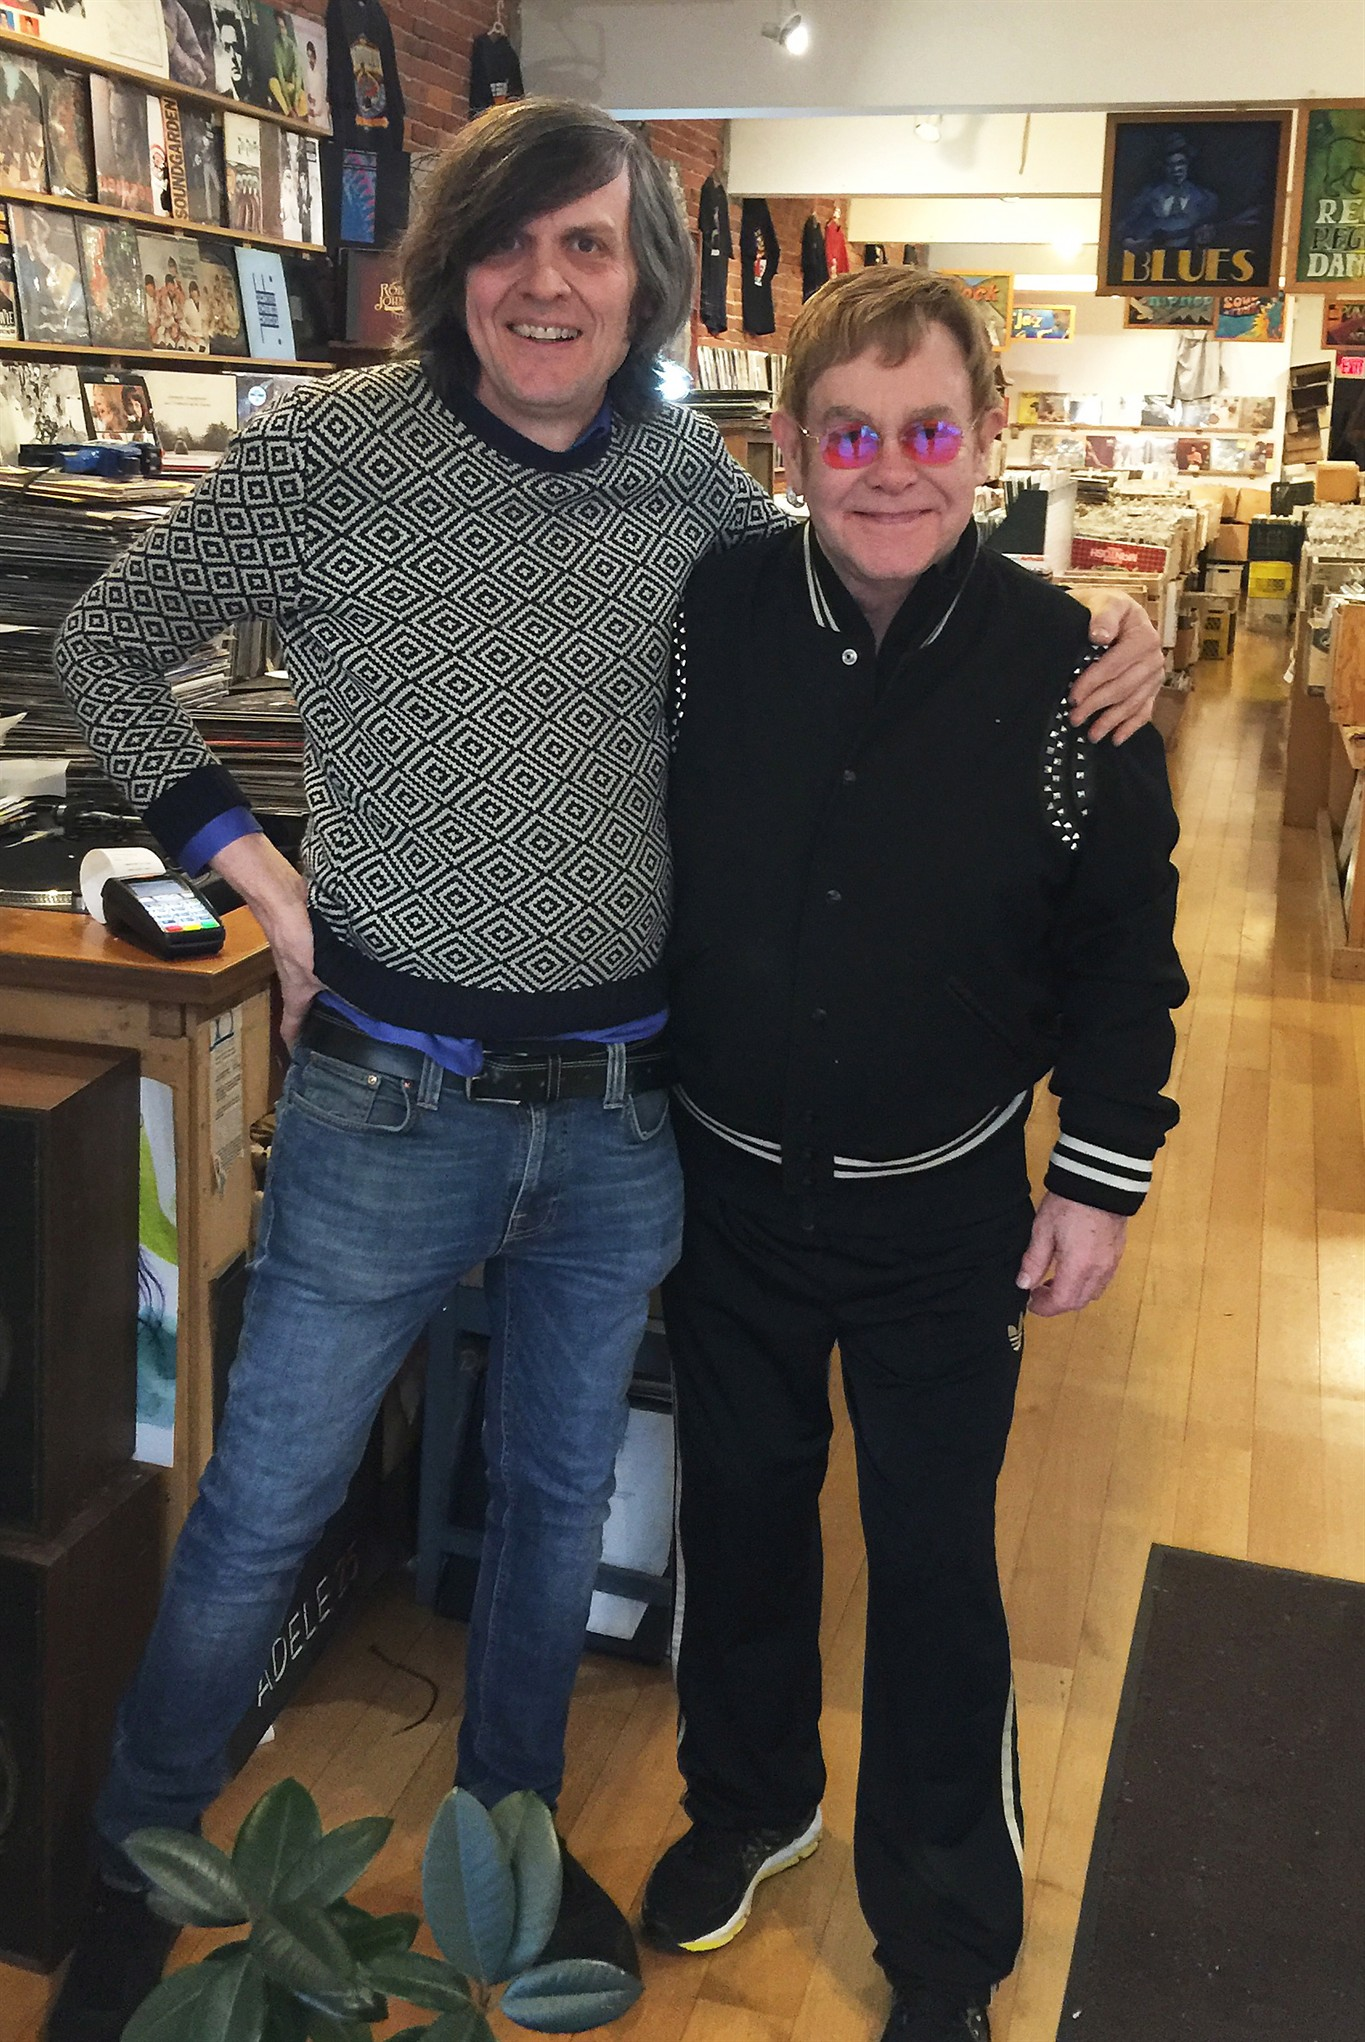 Elton John pops into a Vancouver record store to pick up some vinyl